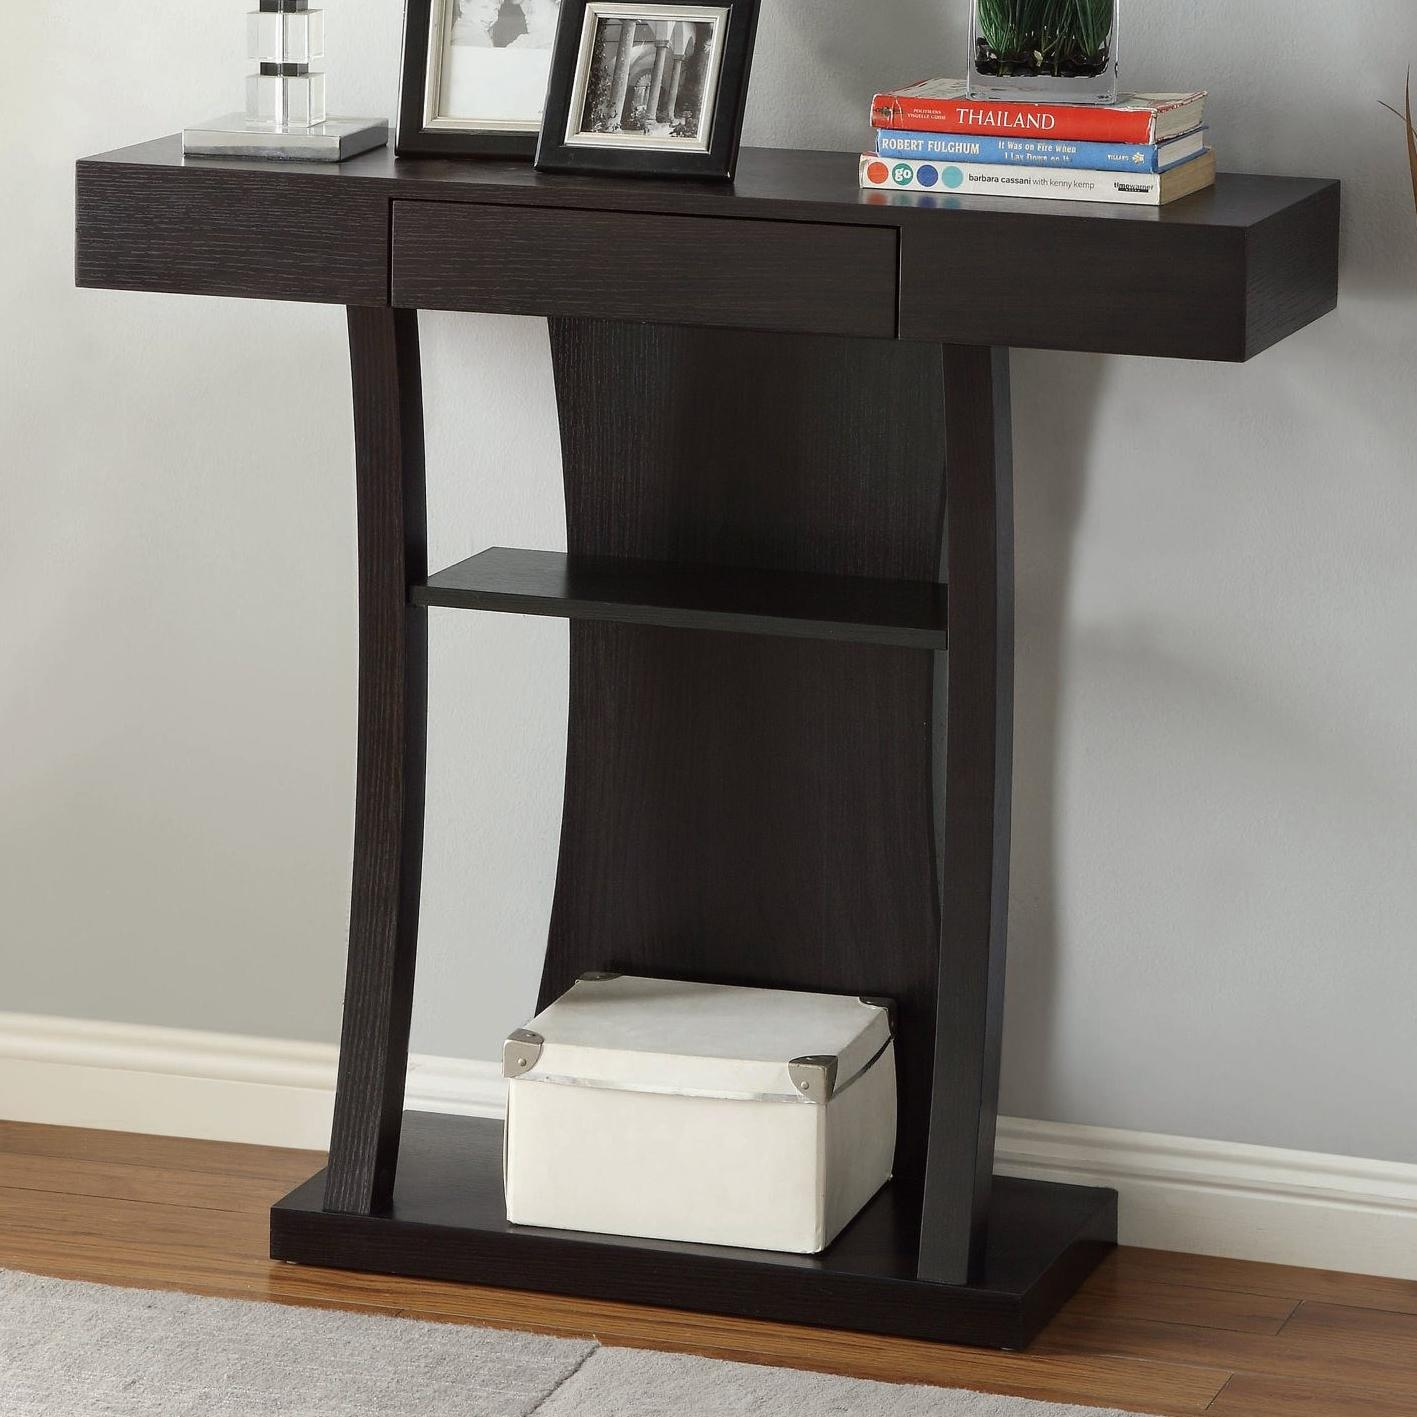 Coaster Accent Tables Console Table - Item Number: 950048